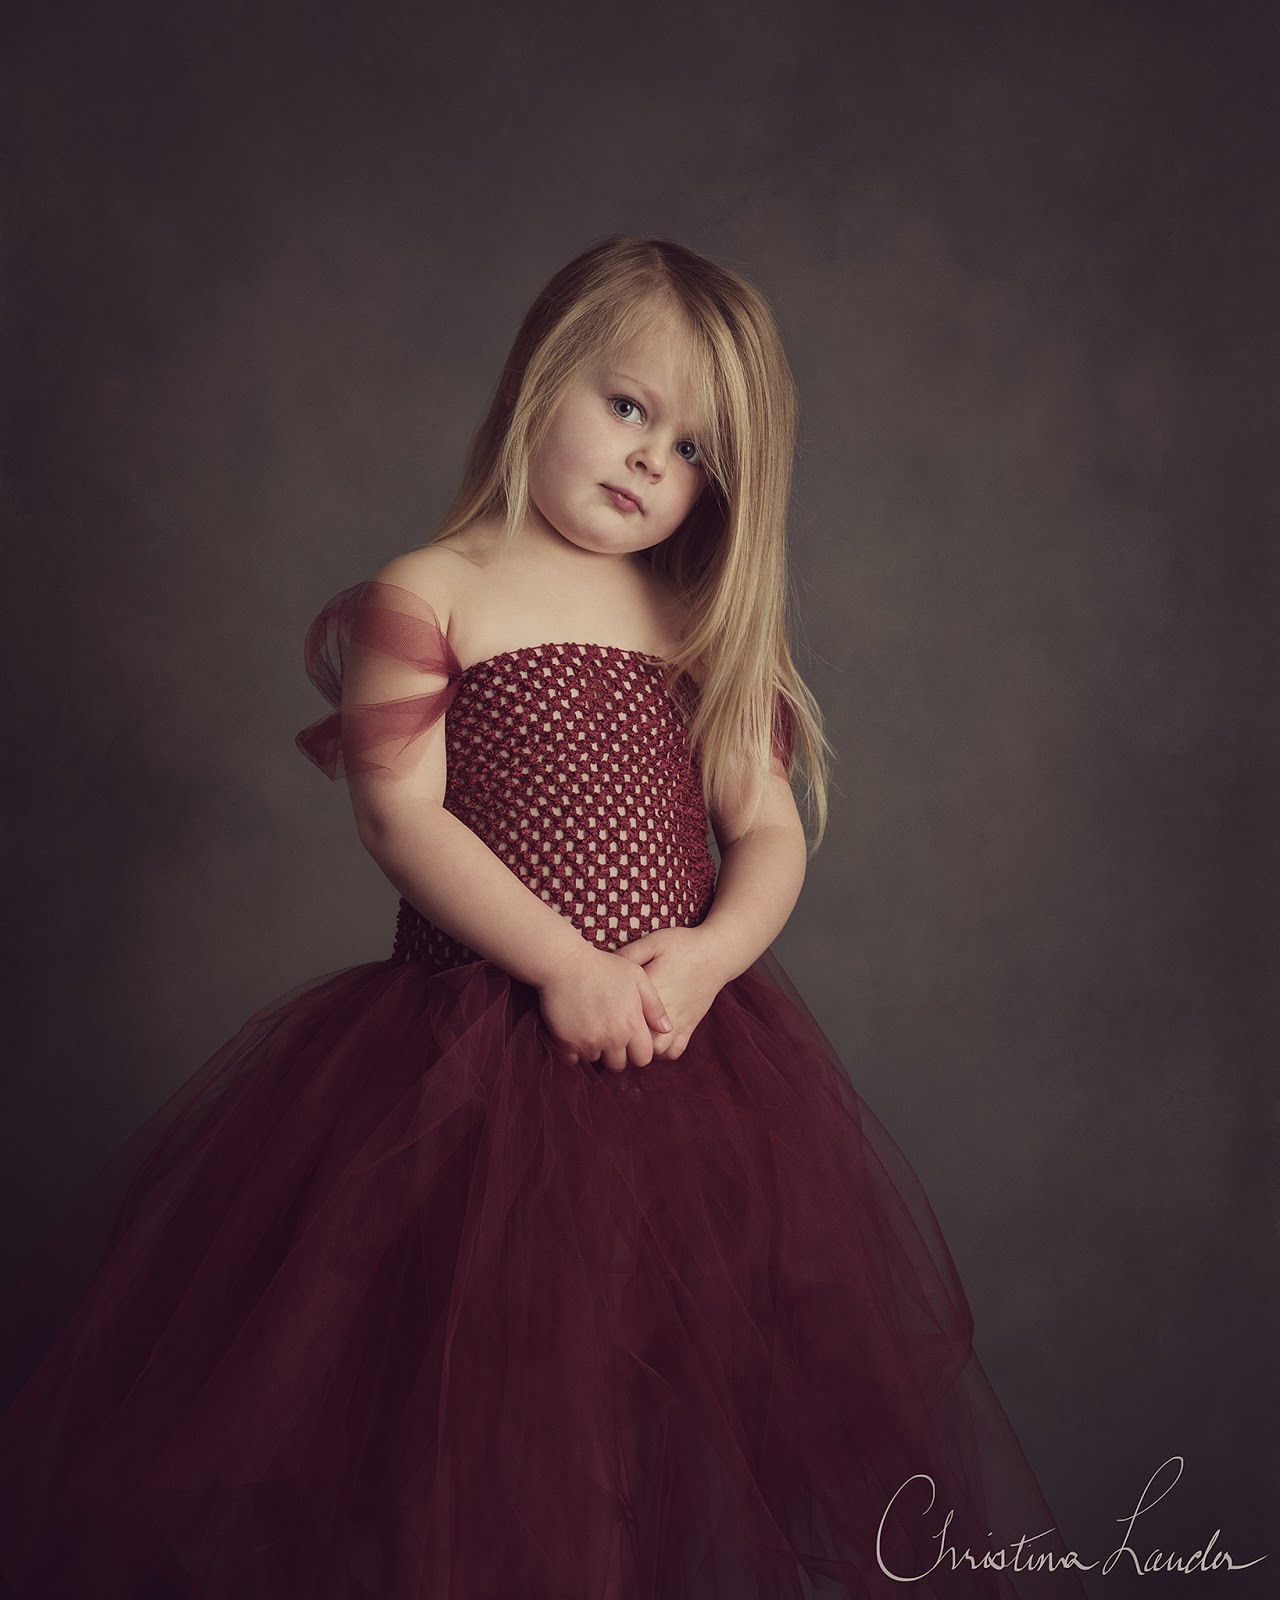 Fine art photography young girls